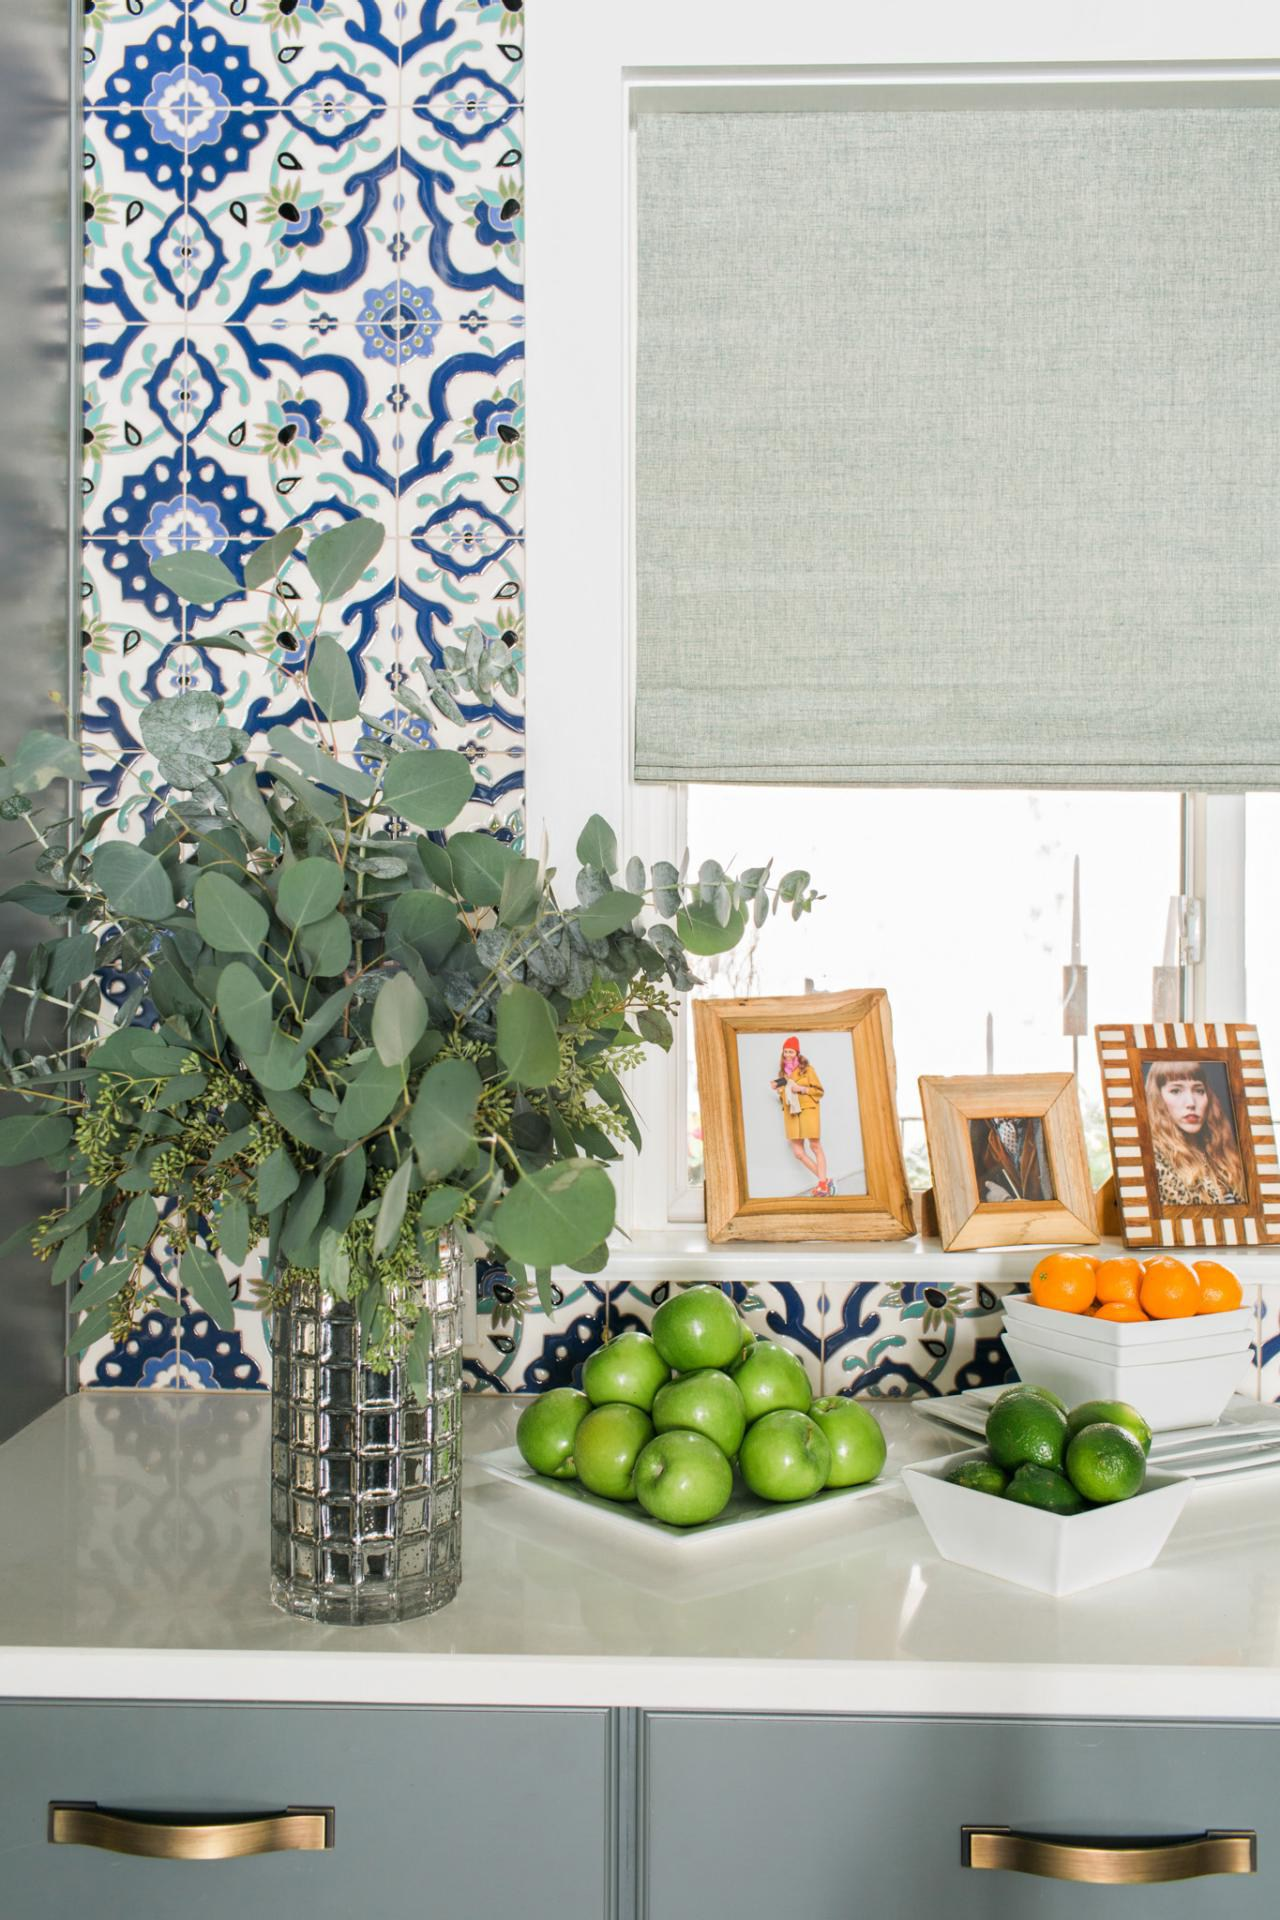 5. One Of A Kind Family Photo Countertop Design